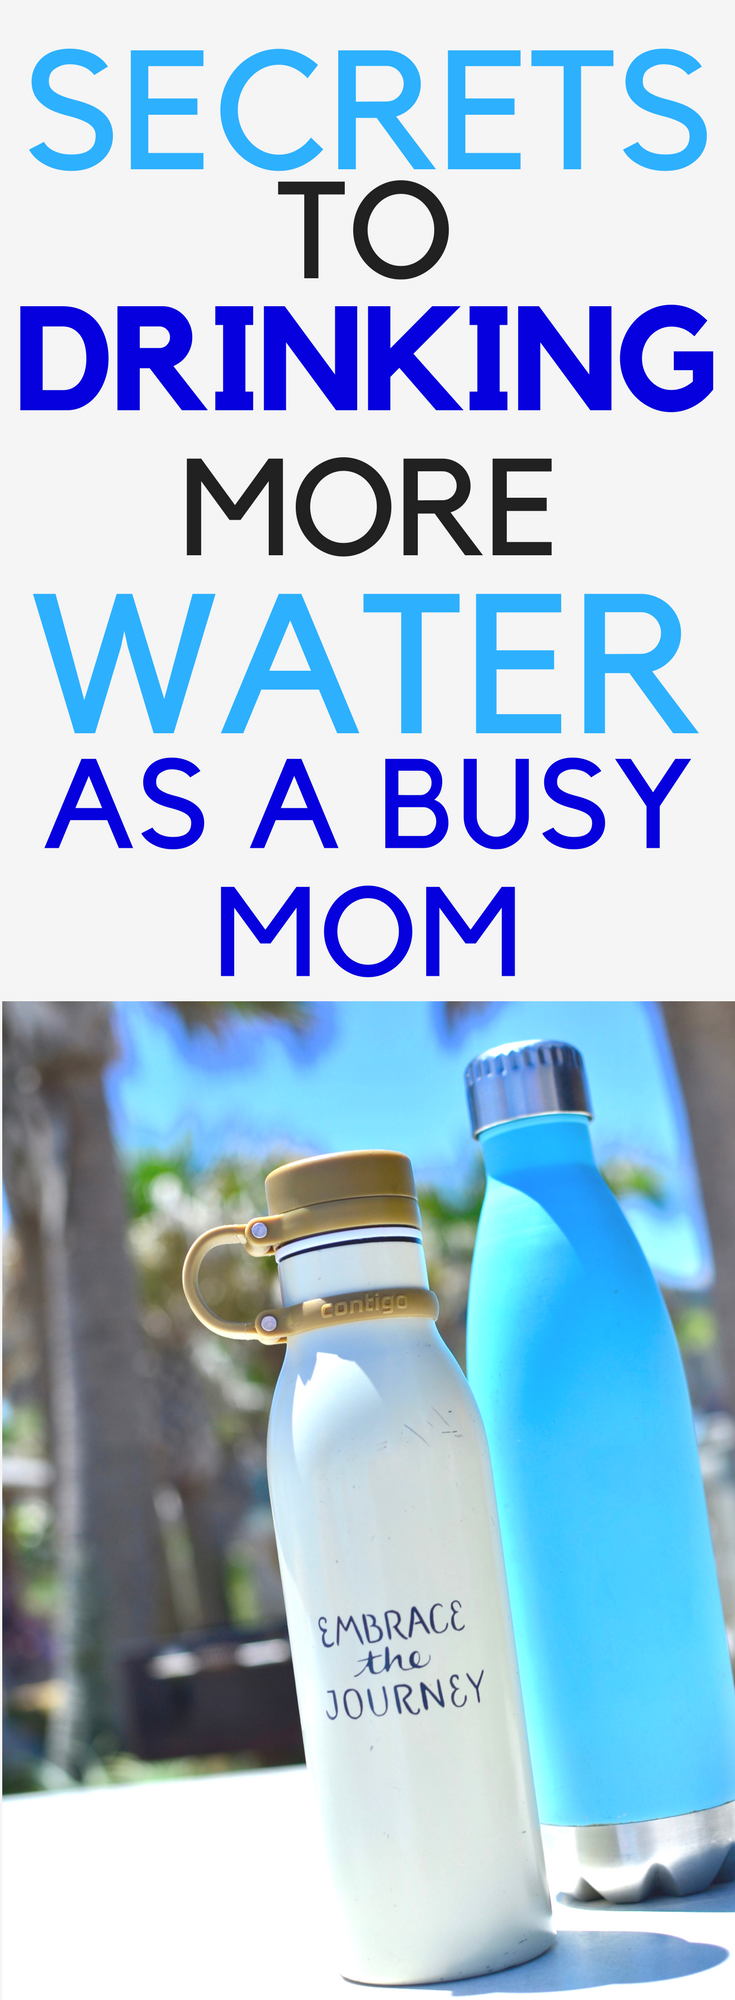 drink more water as a busy mom